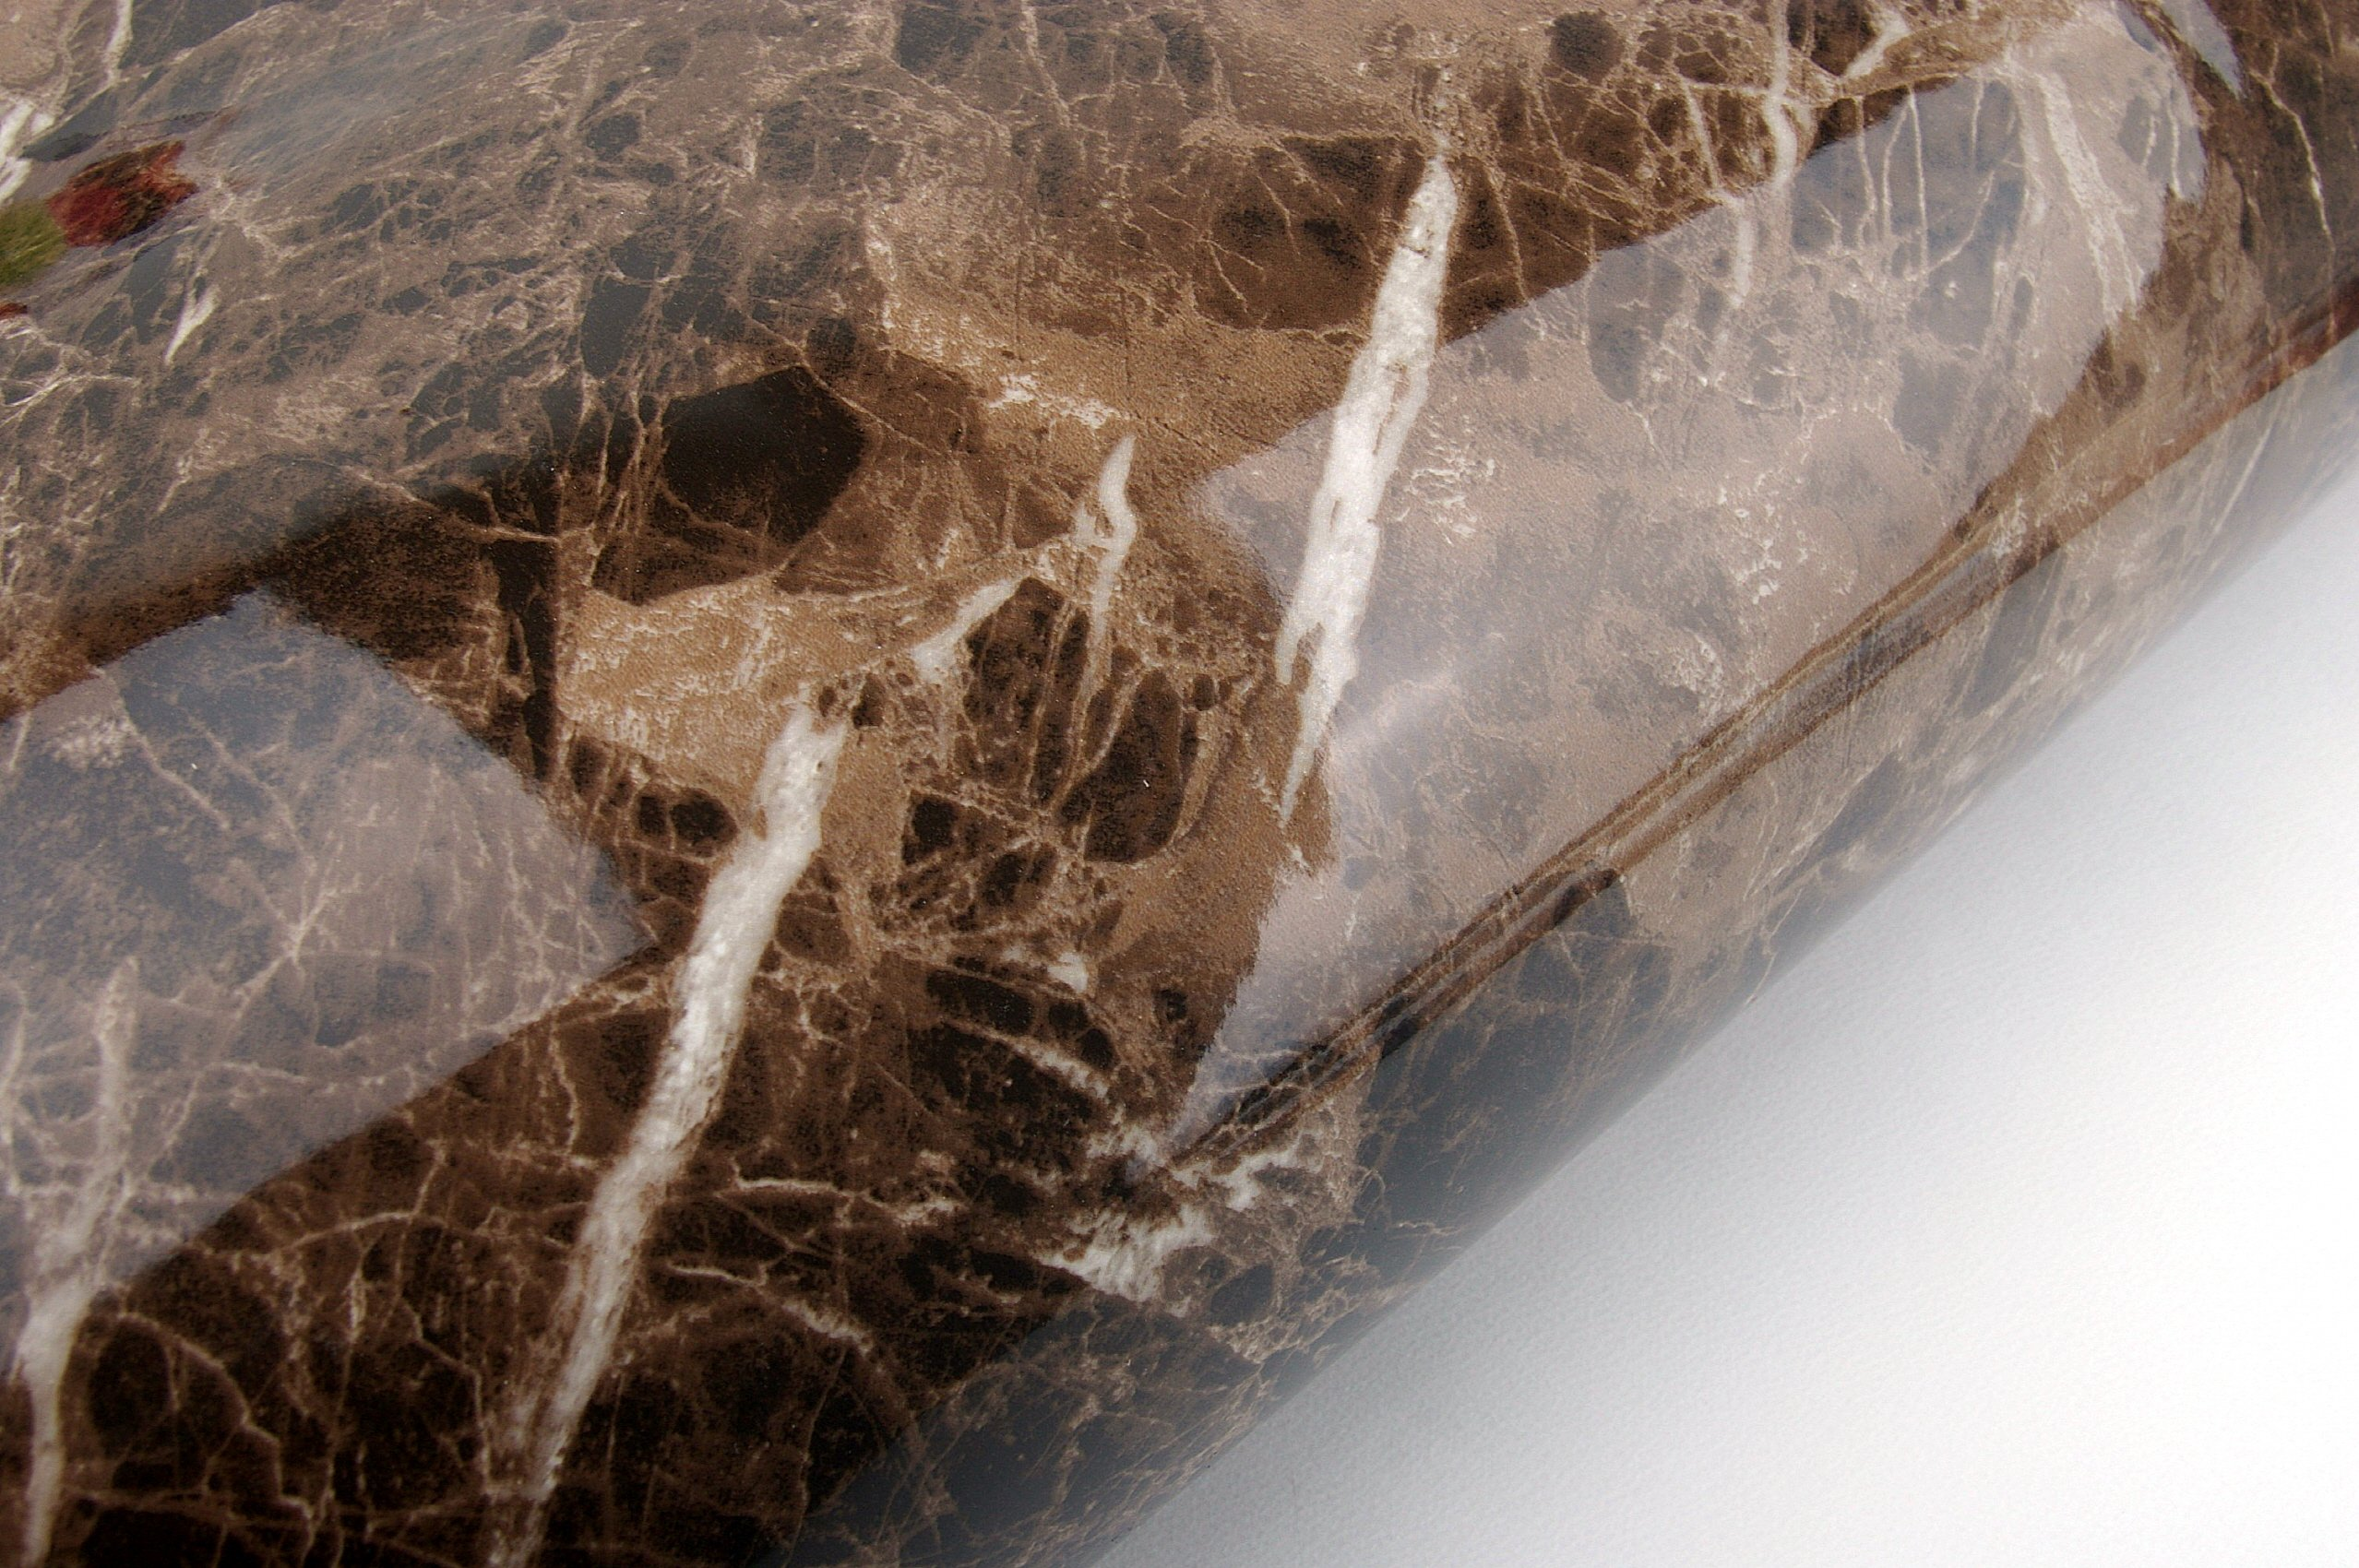 Marble Look Film Brown High Glossy Granite Effect Vinyl Self Adhesive Peel-Stick Brown Counter Top (2' x 6.56 ft(2Pack)) by Very Berry Sticker (Image #5)